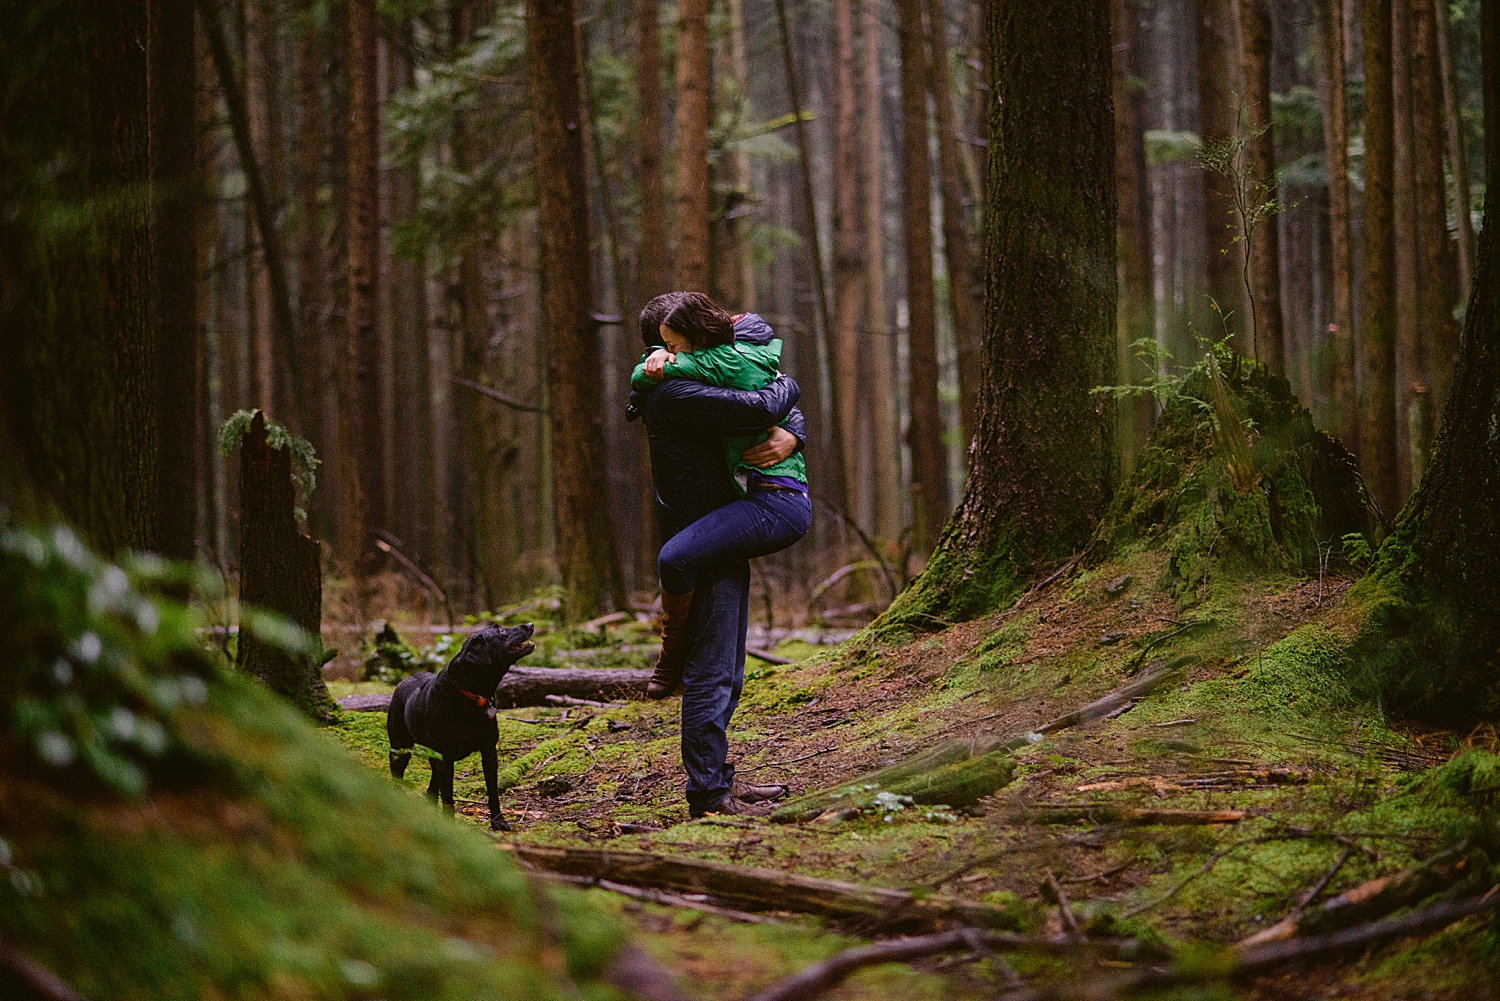 british columbia - pacific spirit park - engagement shoot - vancouver b.c.- maylies lang photography -28.jpg